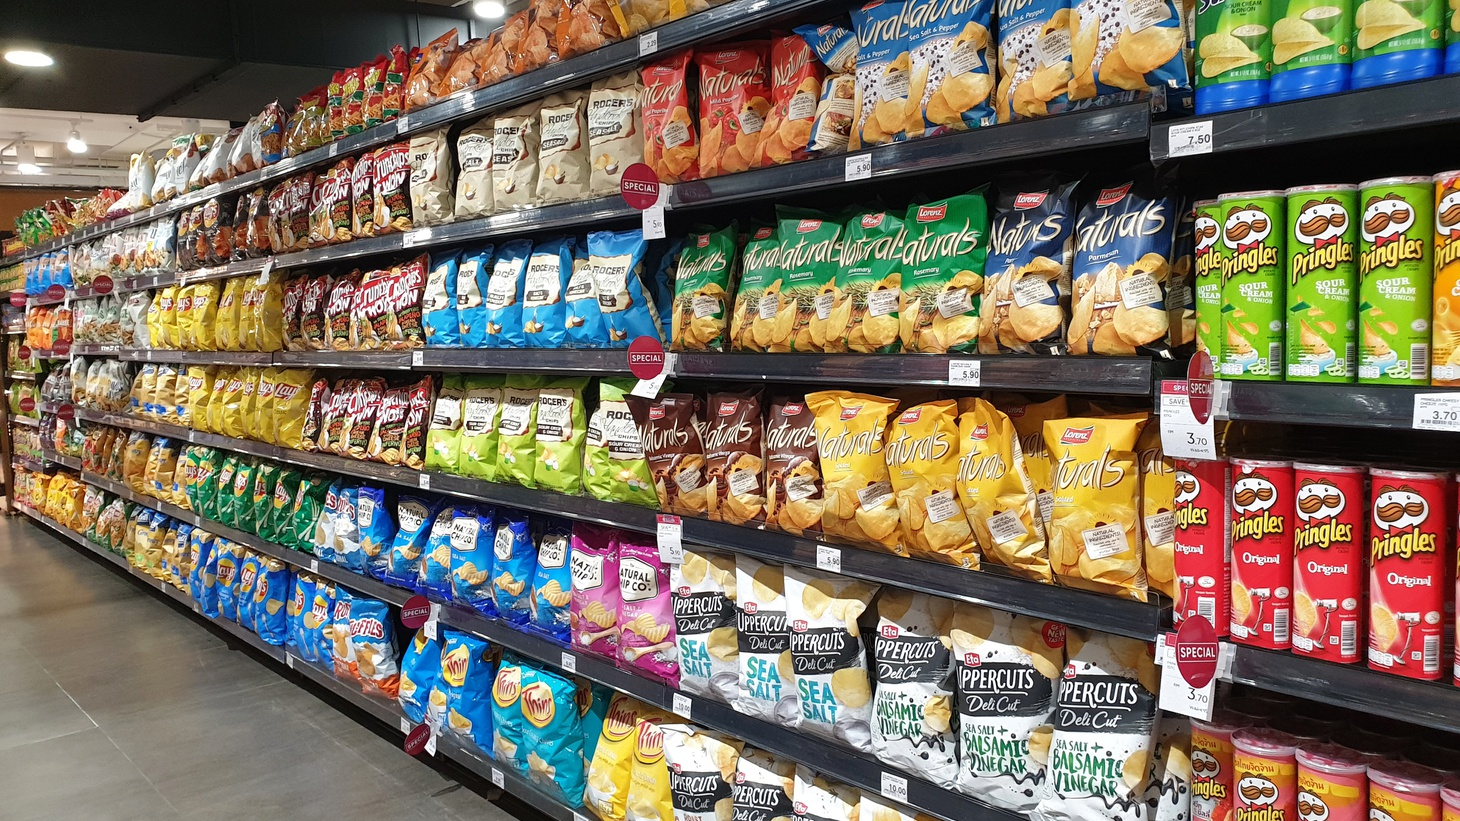 Snacking has become this fourth meal in America. On average, we're now getting something like 550 calories a day, a quarter of all the calories we get from snack foods that we're eating, which by definition, we're eating fast and hitting the brain fast, says author Michael Moss.